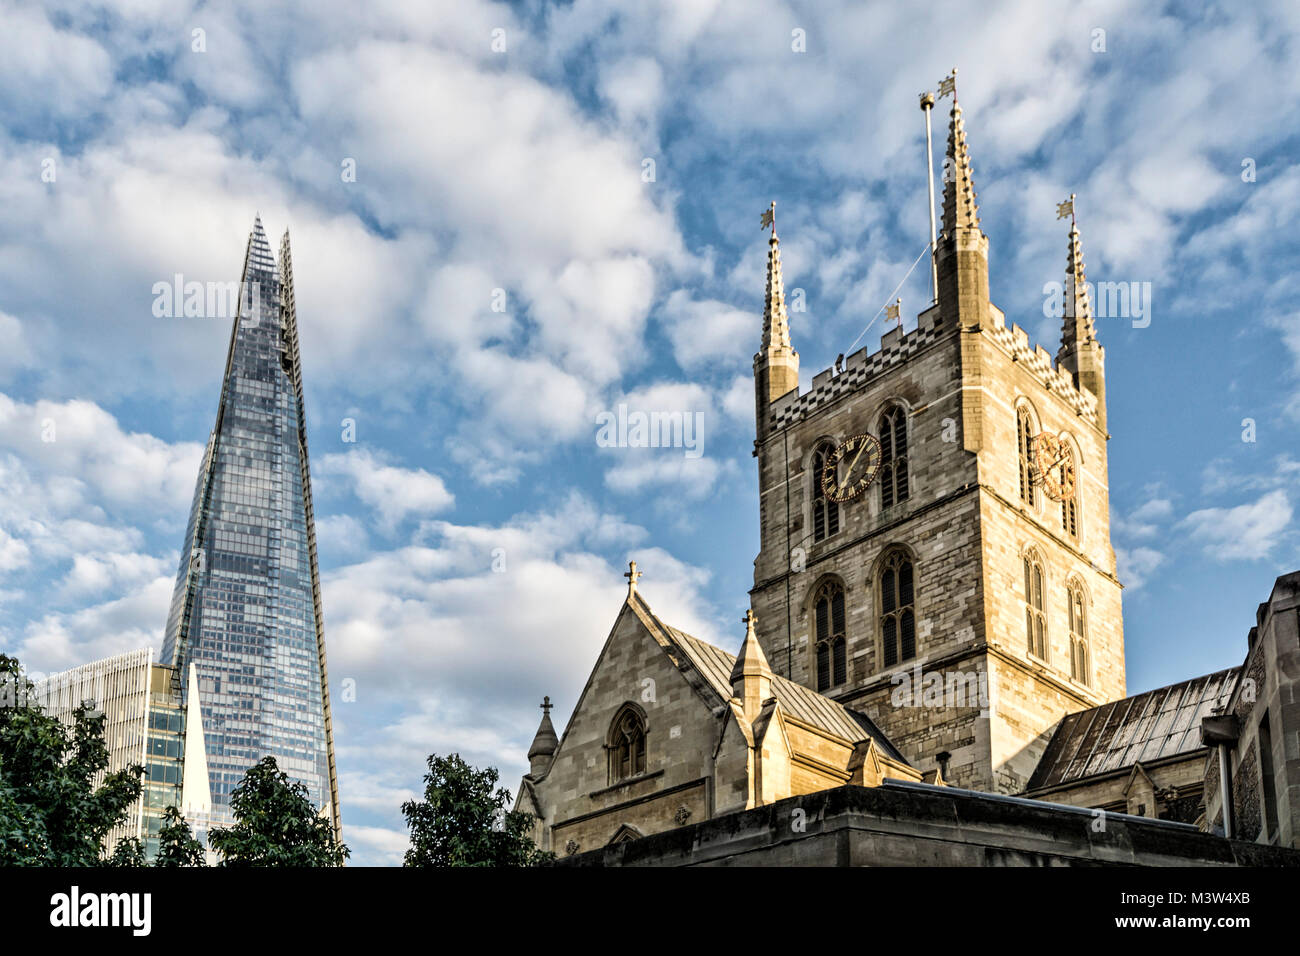 Southwark Cathedral and The Shard Skyscraper,  South Bank, London,  UK - Stock Image